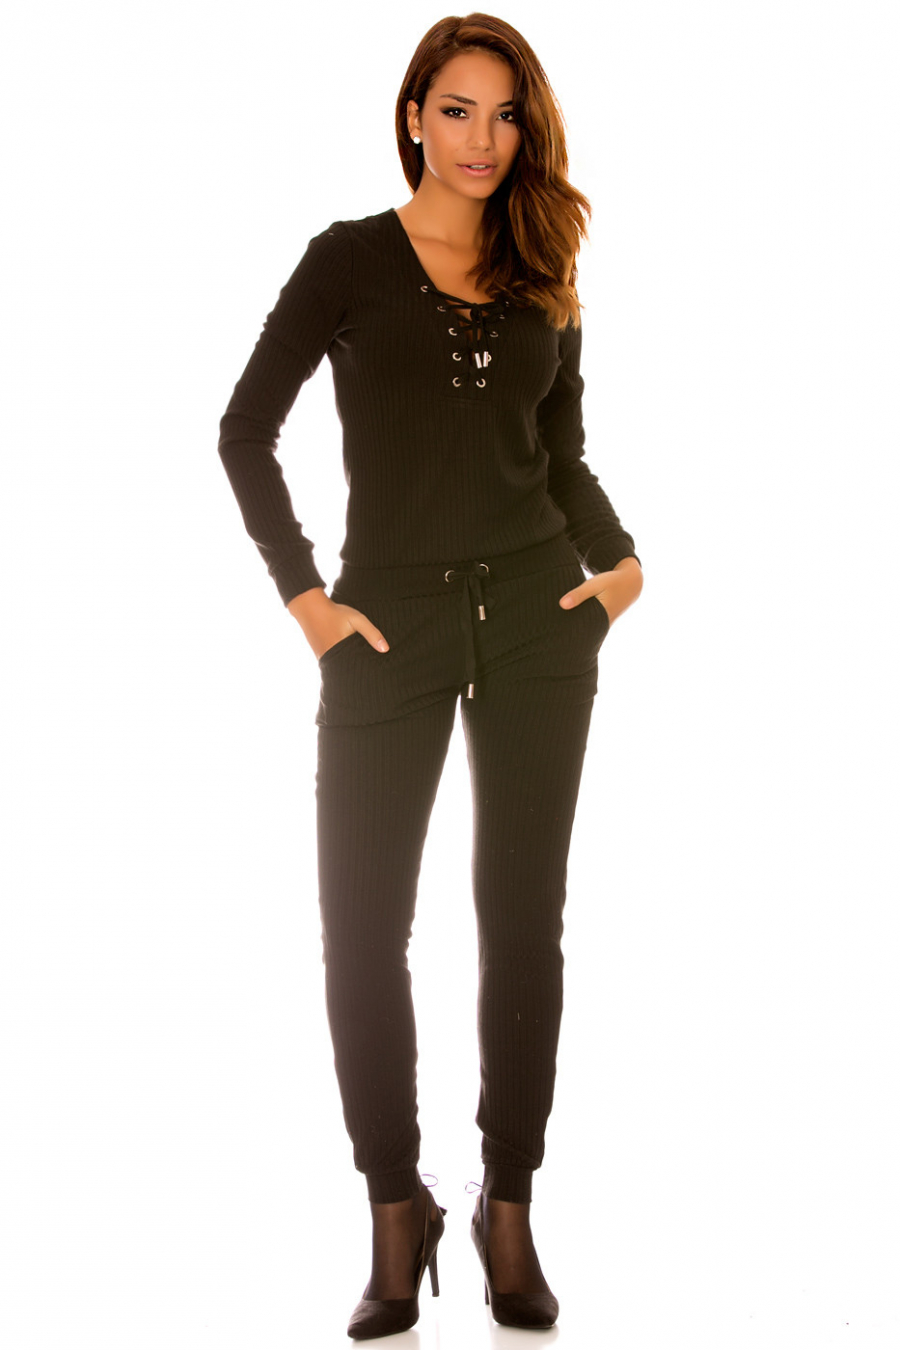 Fashionable black mesh jumpsuit with lace at the collar. Women's jumpsuit wj7115